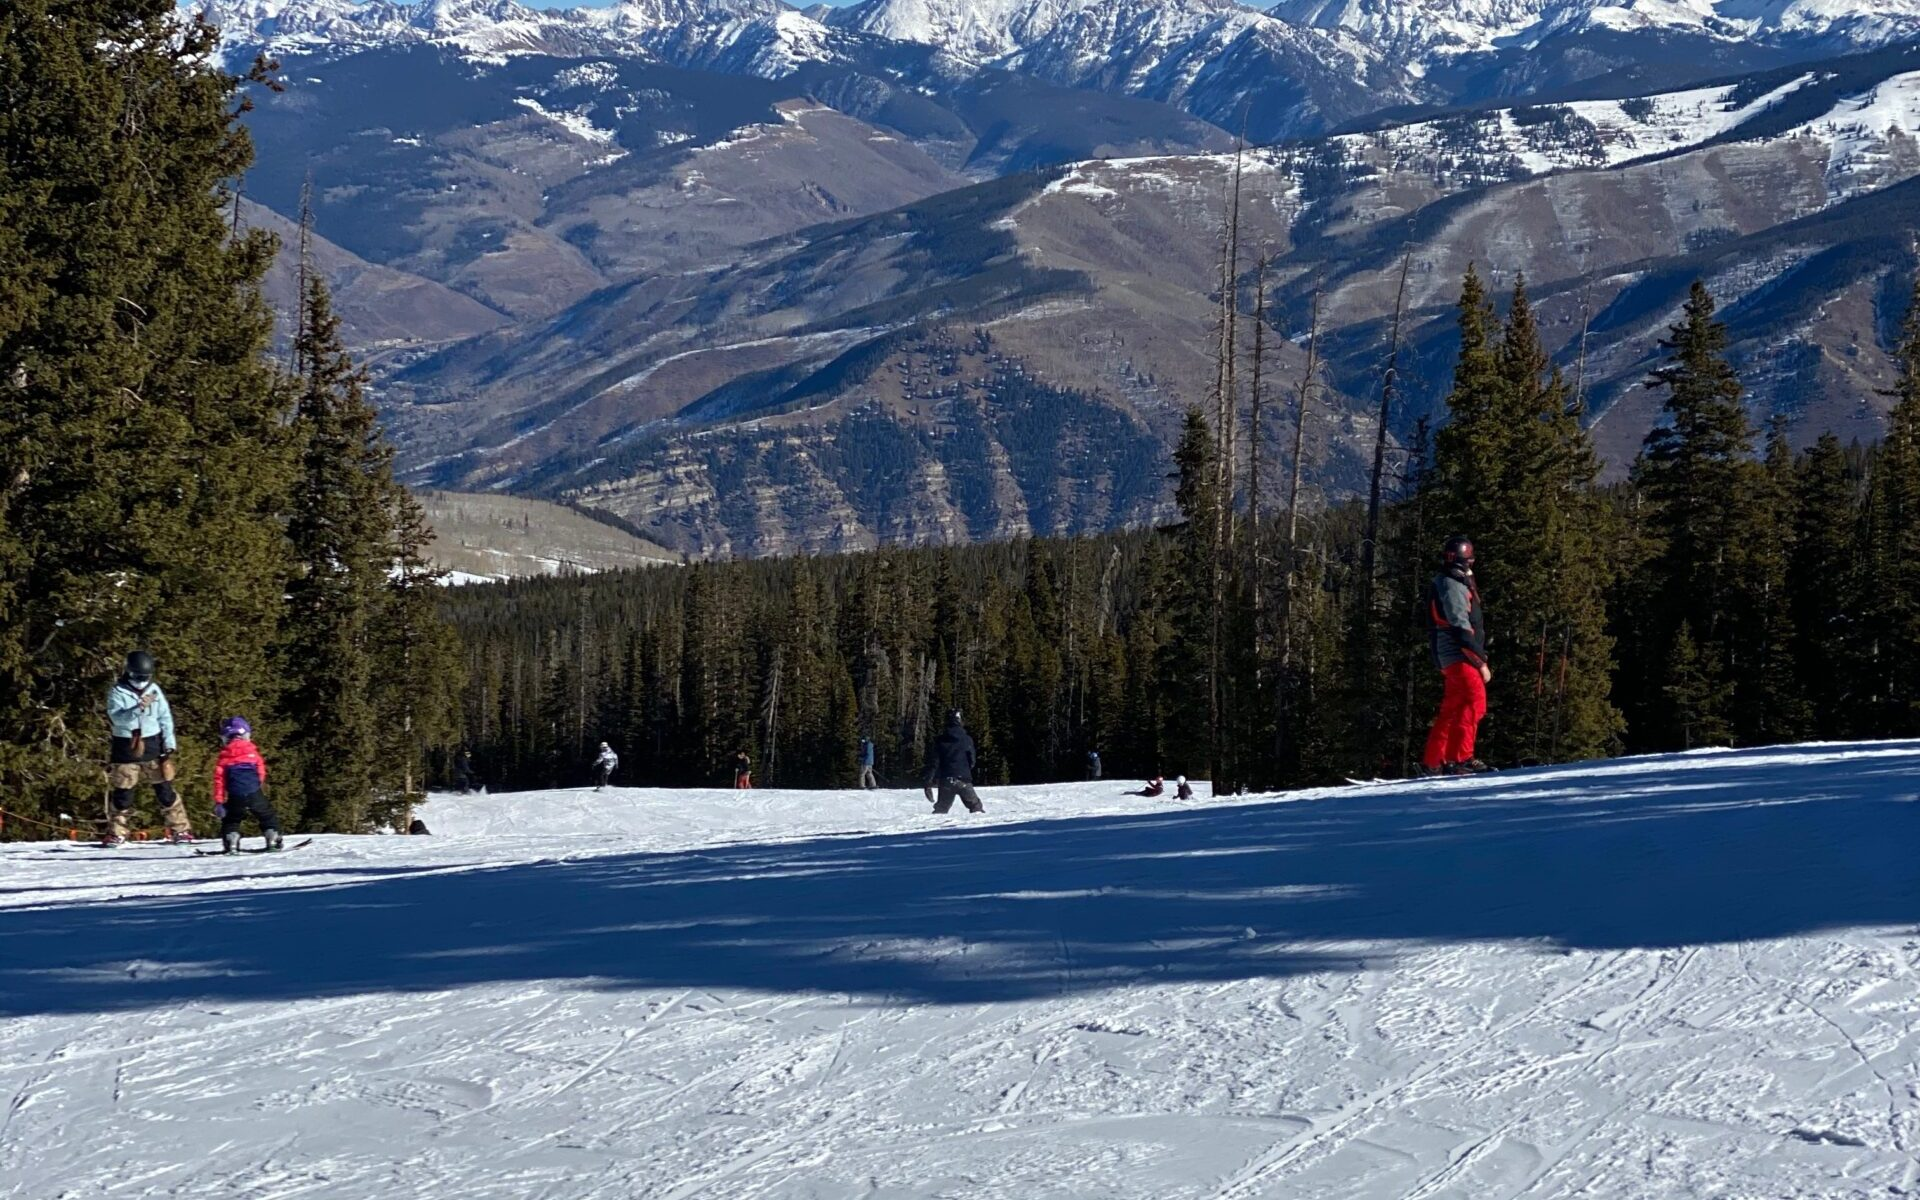 Beginner Ski Hill - Beaver Creek